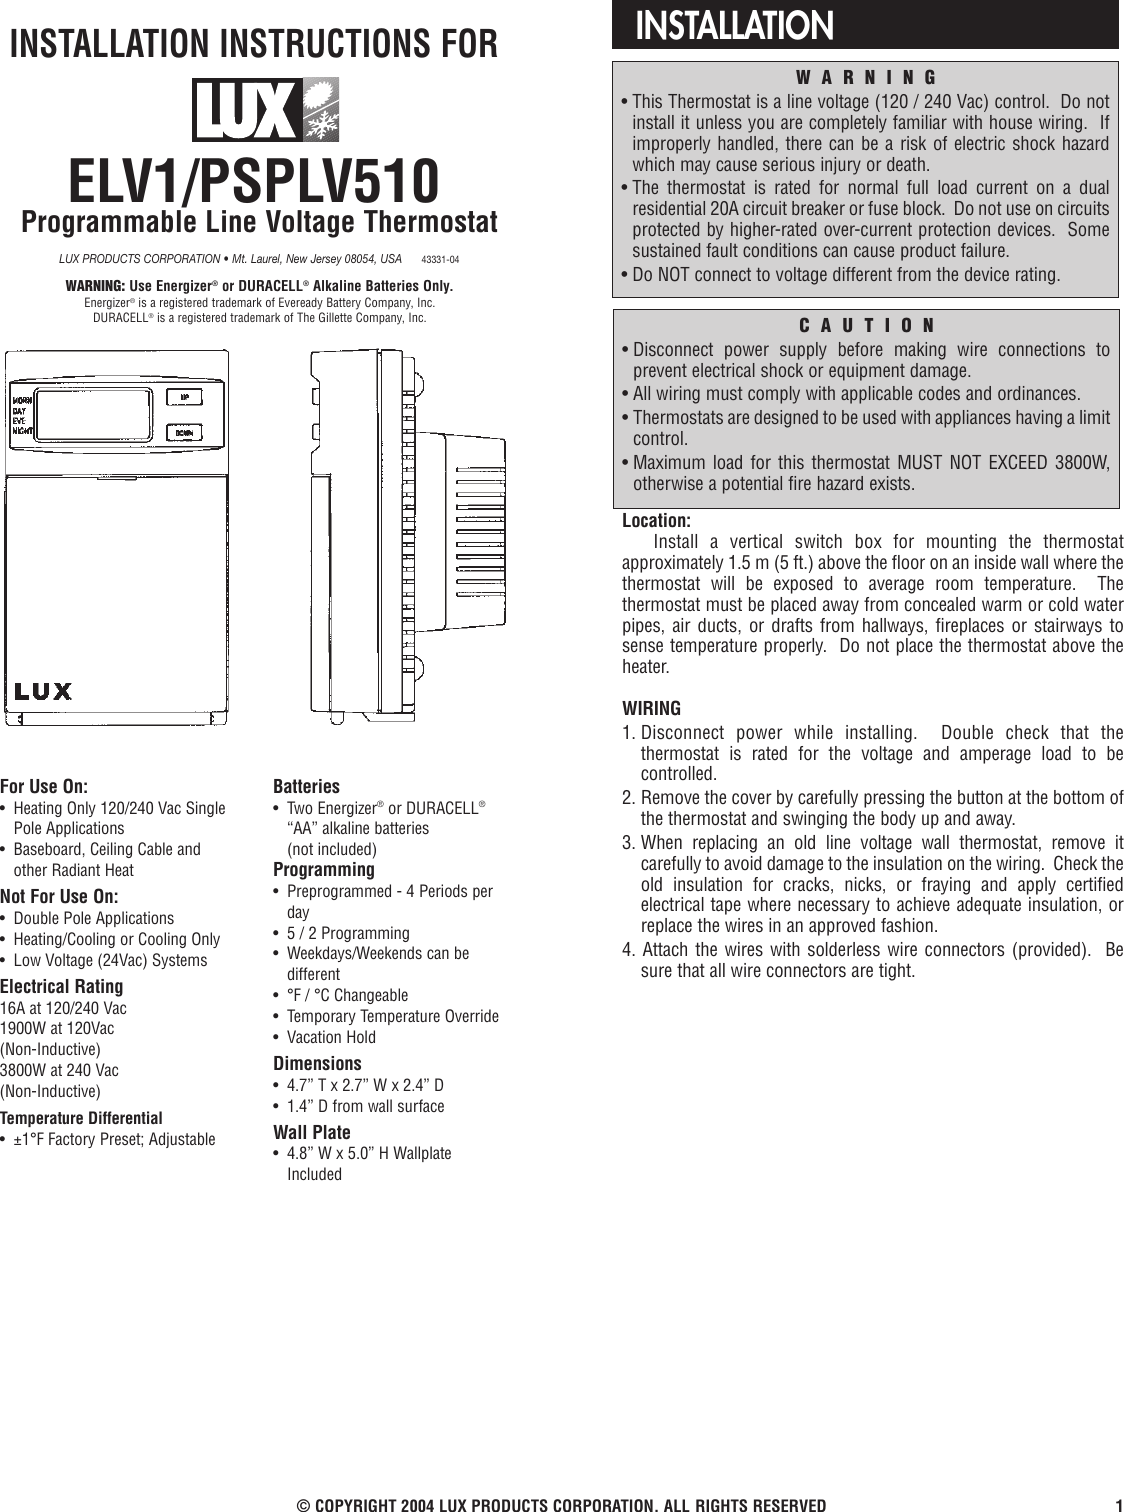 Lux Products Elv1 Discontinued Instruction Manual 120 Volt Baseboard Heater Thermostat Wiring Diagram For Single